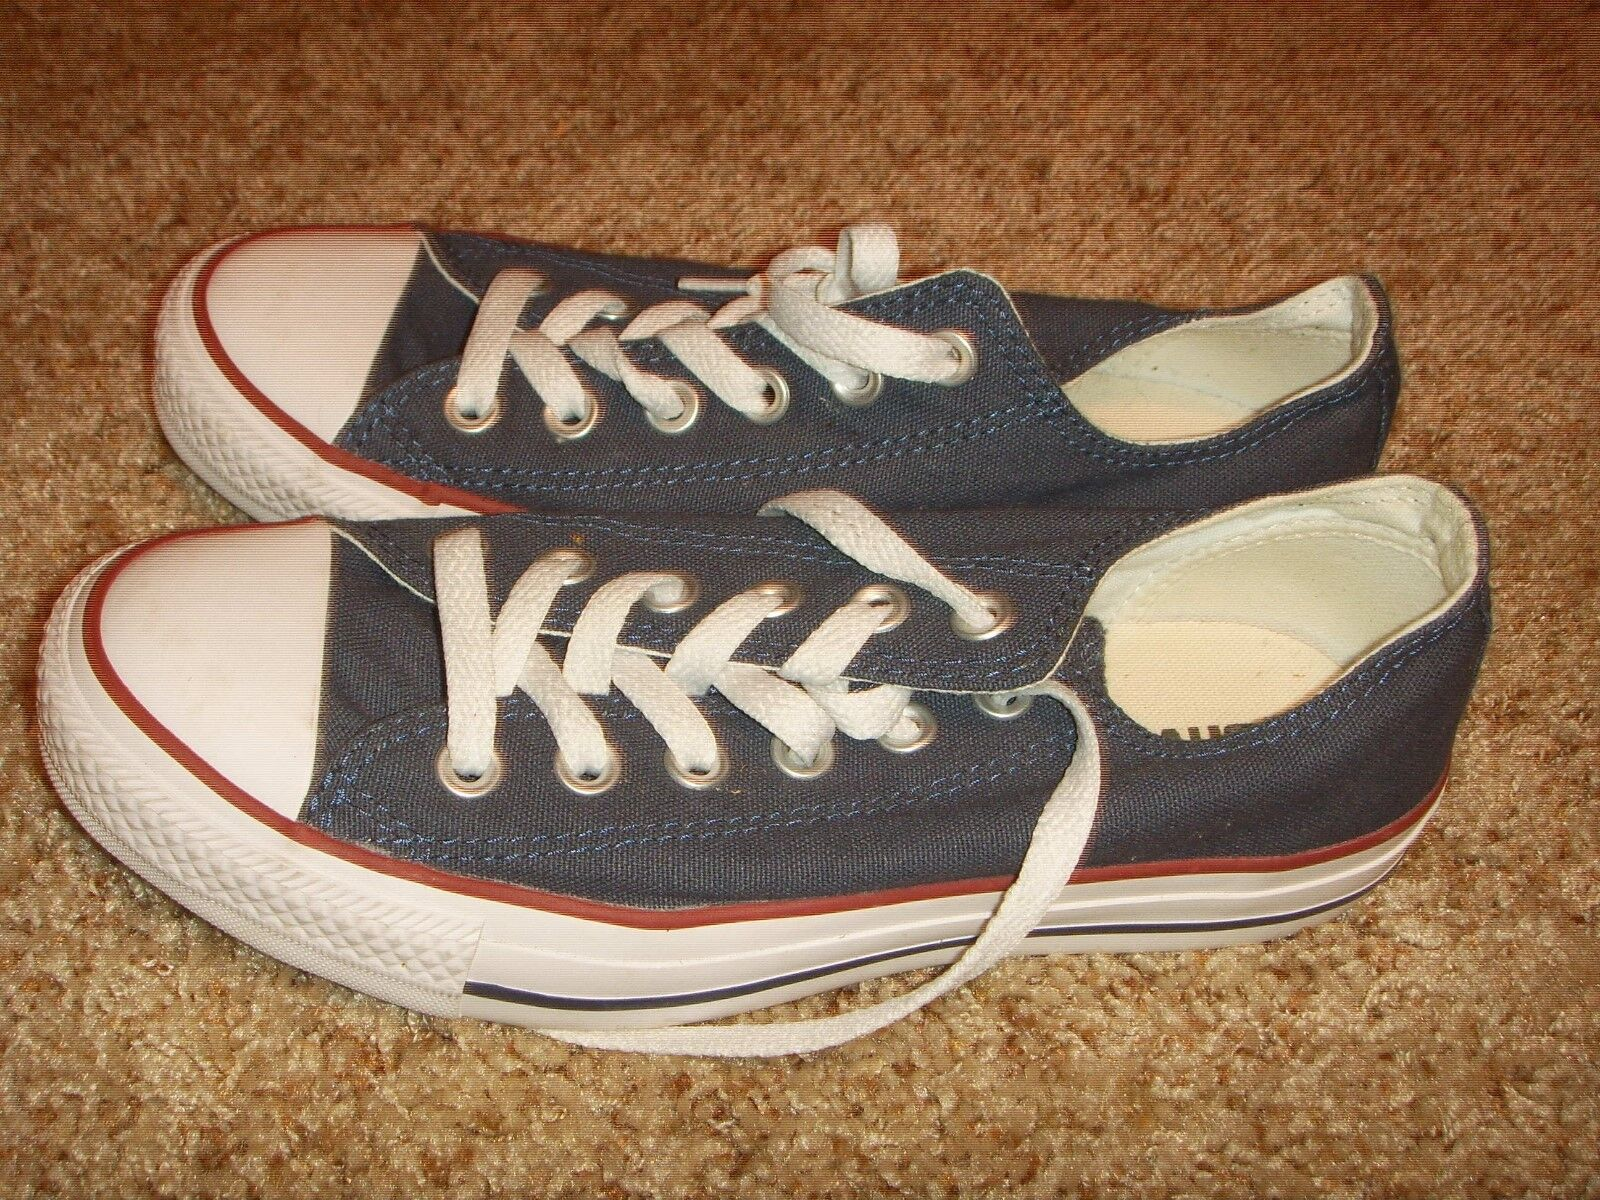 Converse All Star Chuck Taylor Canvas Shoes Low Top Blue Red White Womens Size 7